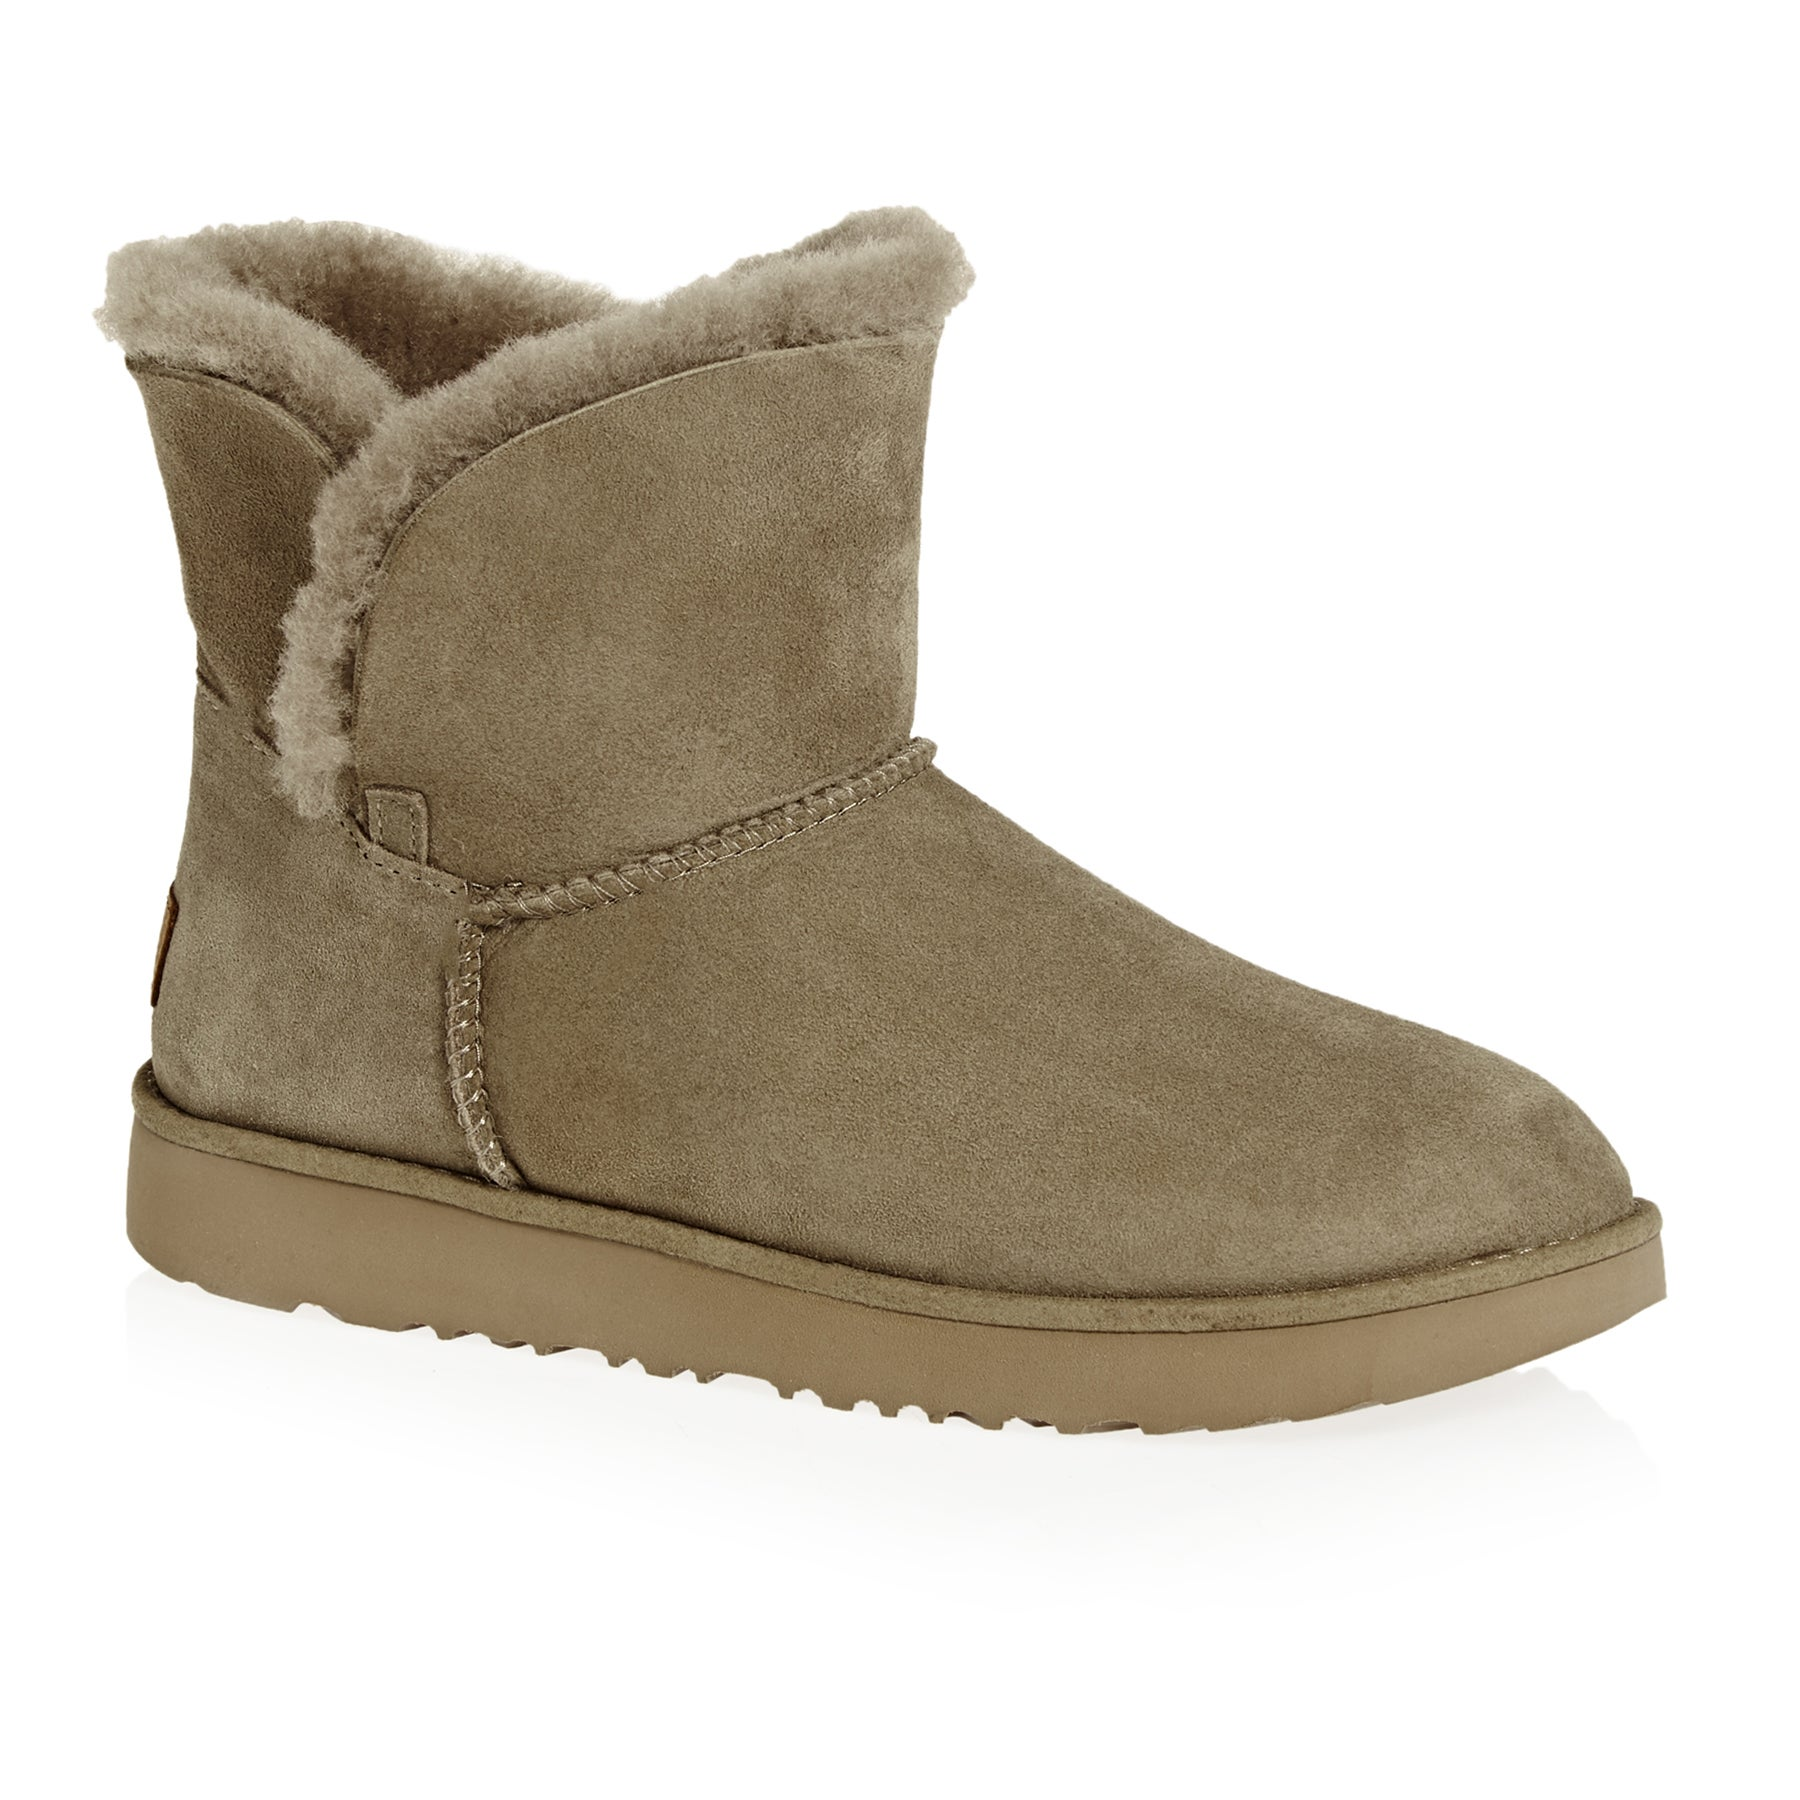 537fd830865 UGG Classic Cuff Mini Womens Boots available from Surfdome